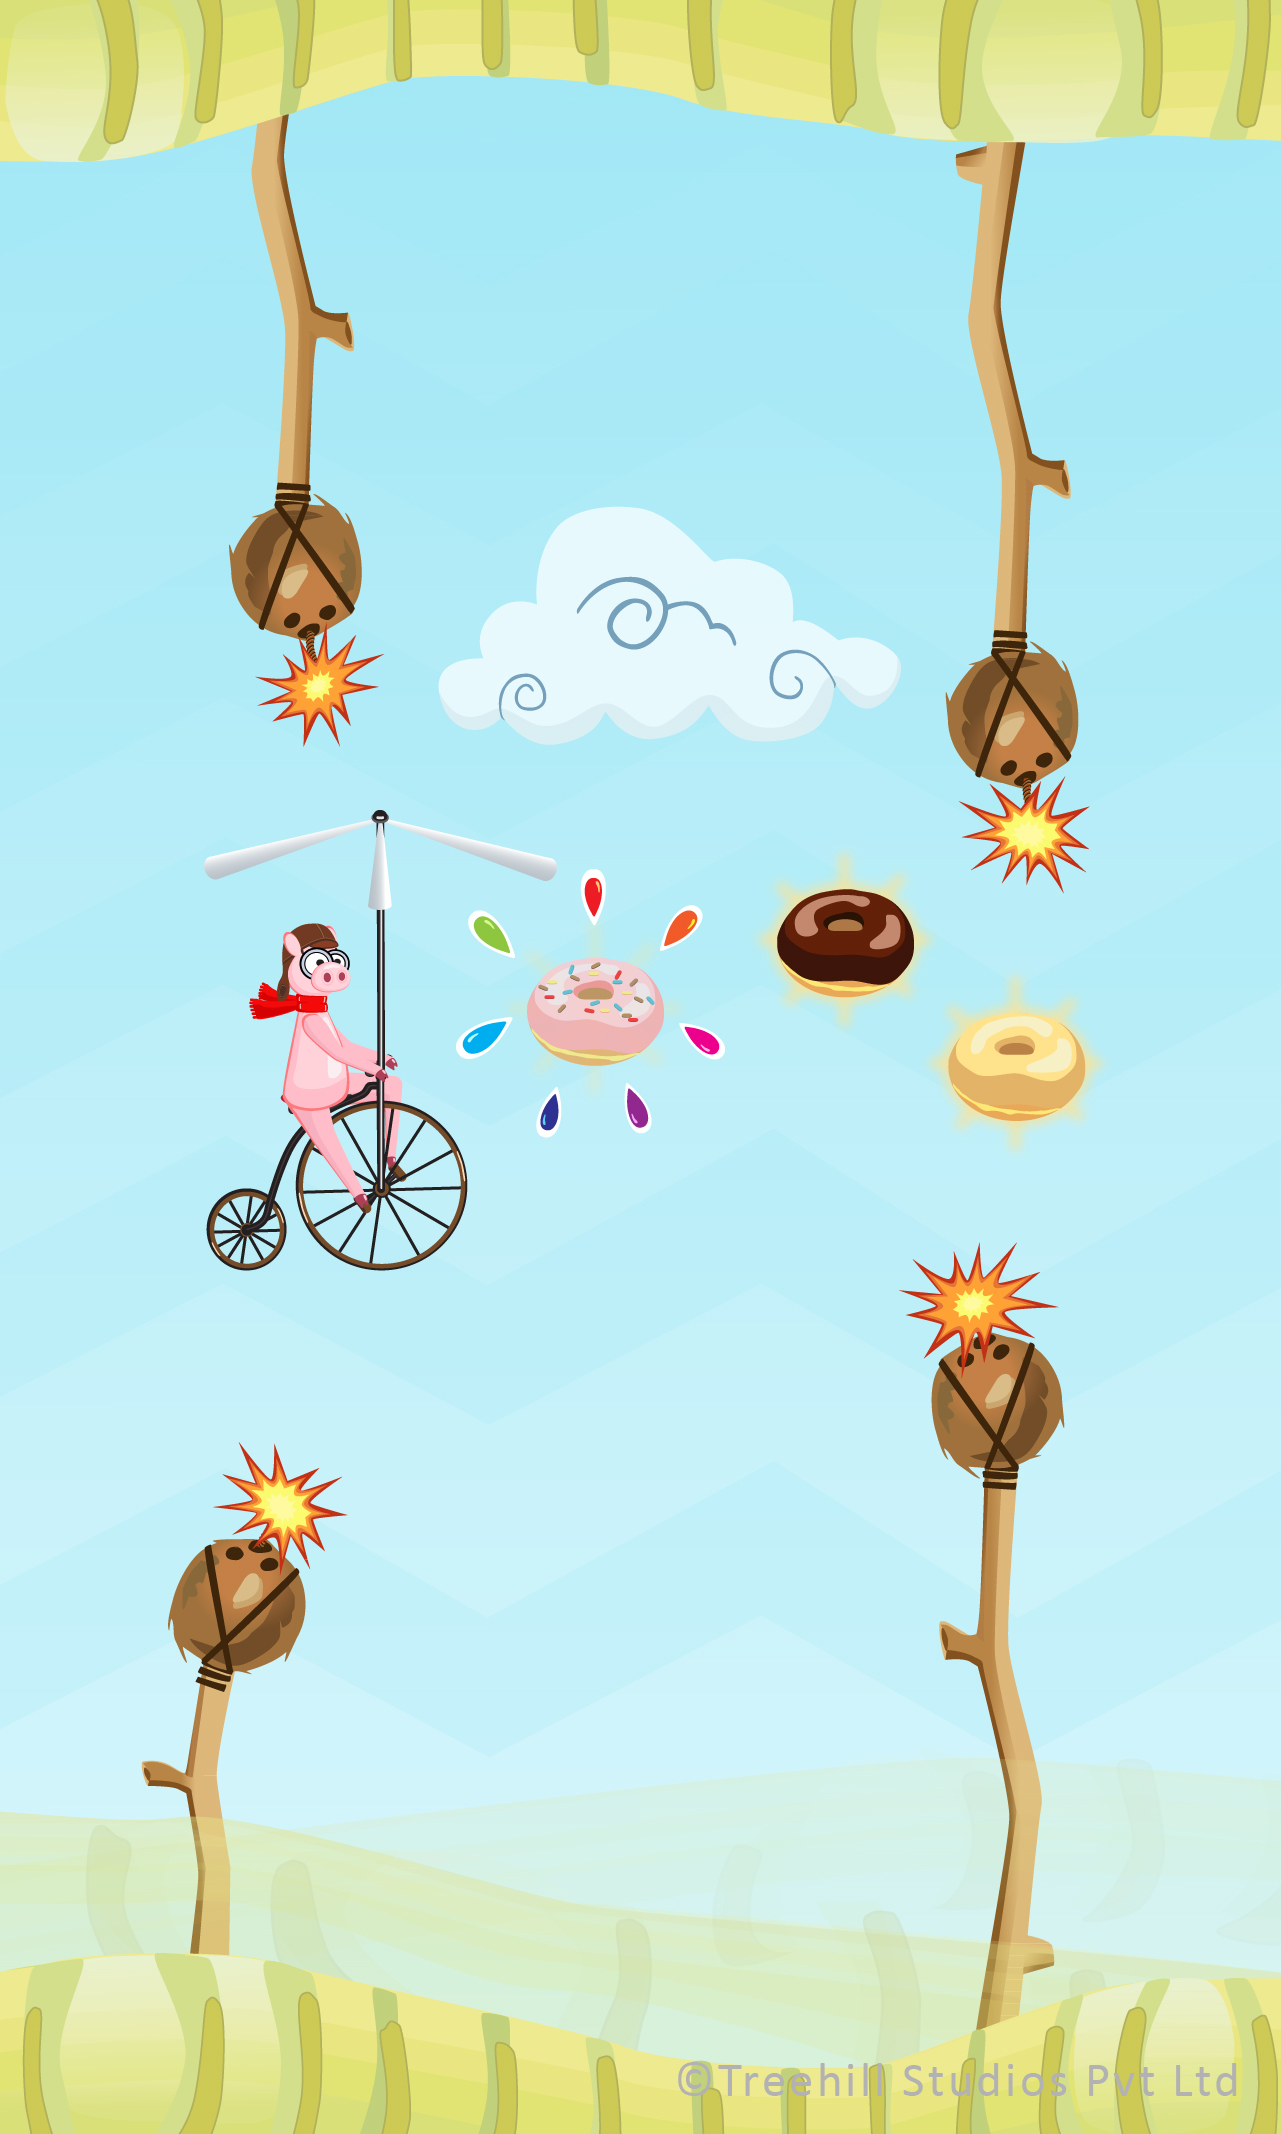 Bacon Quest Gameplay Screenshot01.jpg